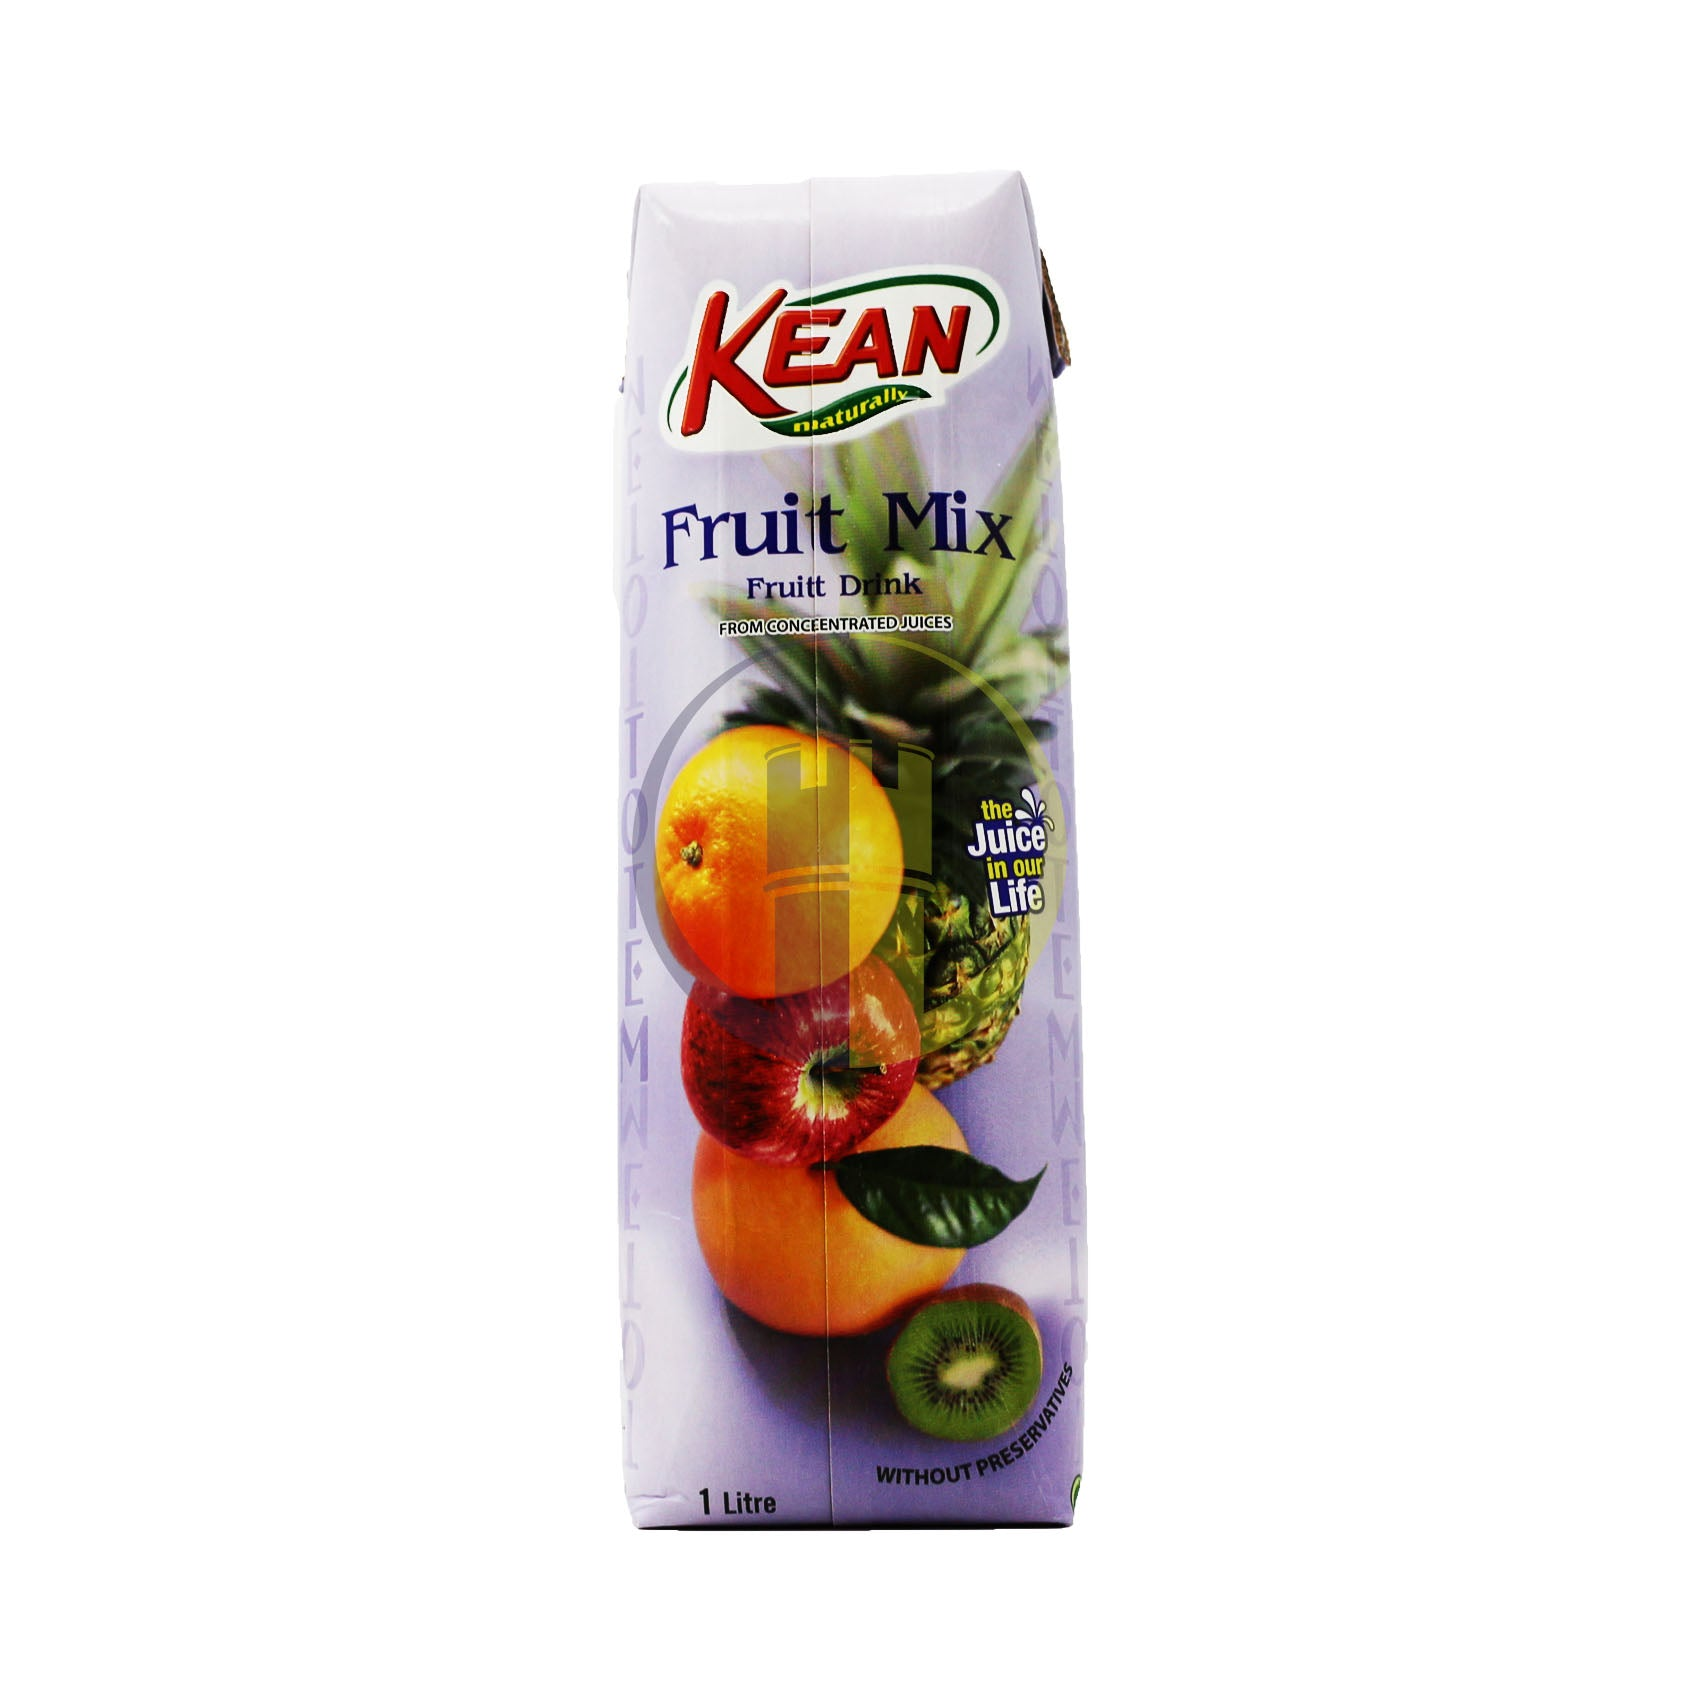 stm>Kean Fruit Mix 1 ltr